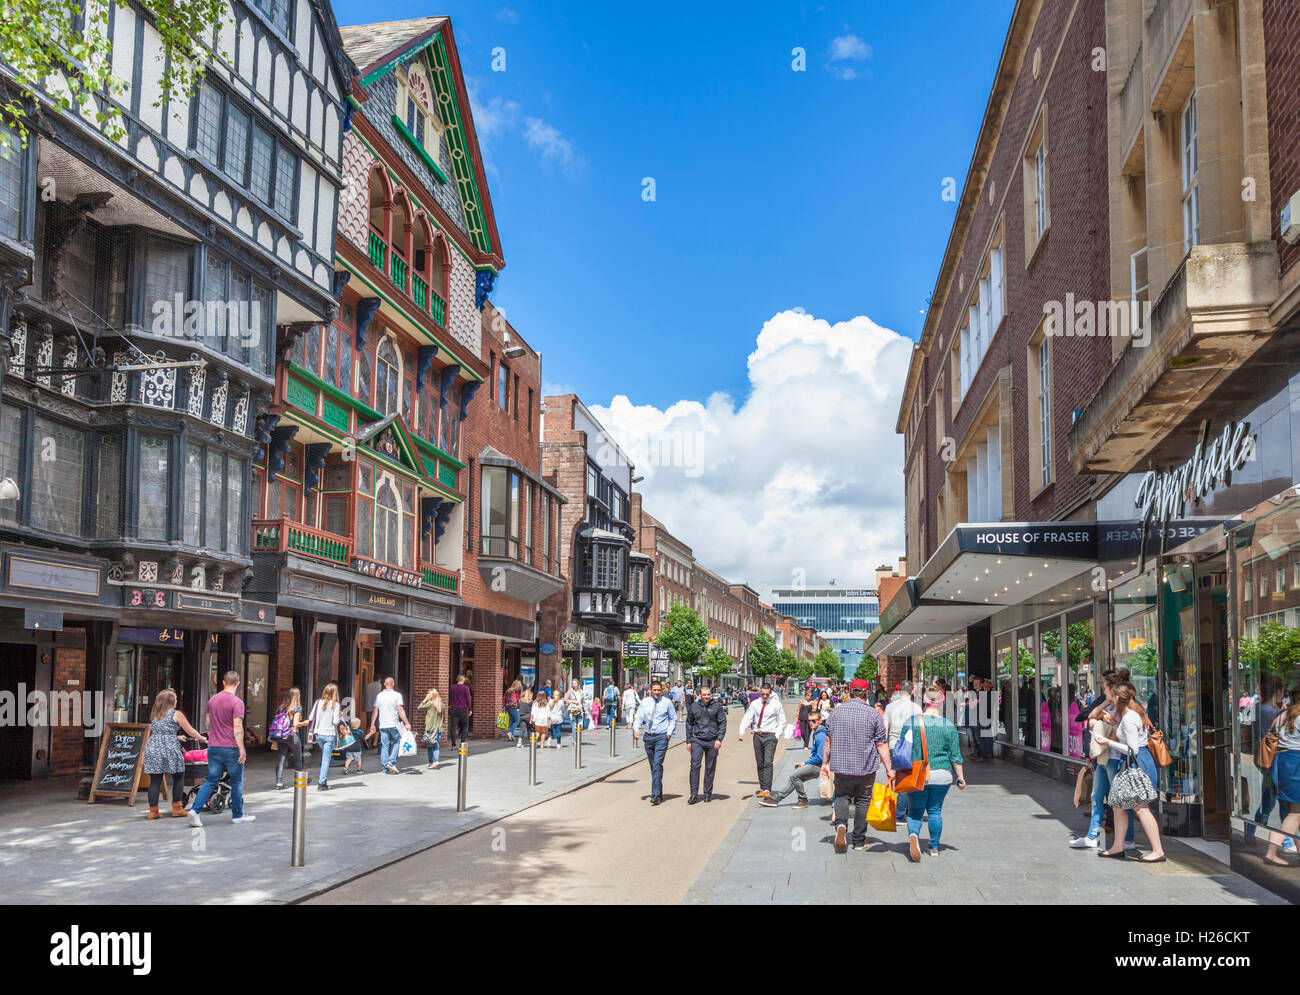 High street shops and historic buildings Exeter City centre Exeter Devon England UK GB EU Europe Stock Photo